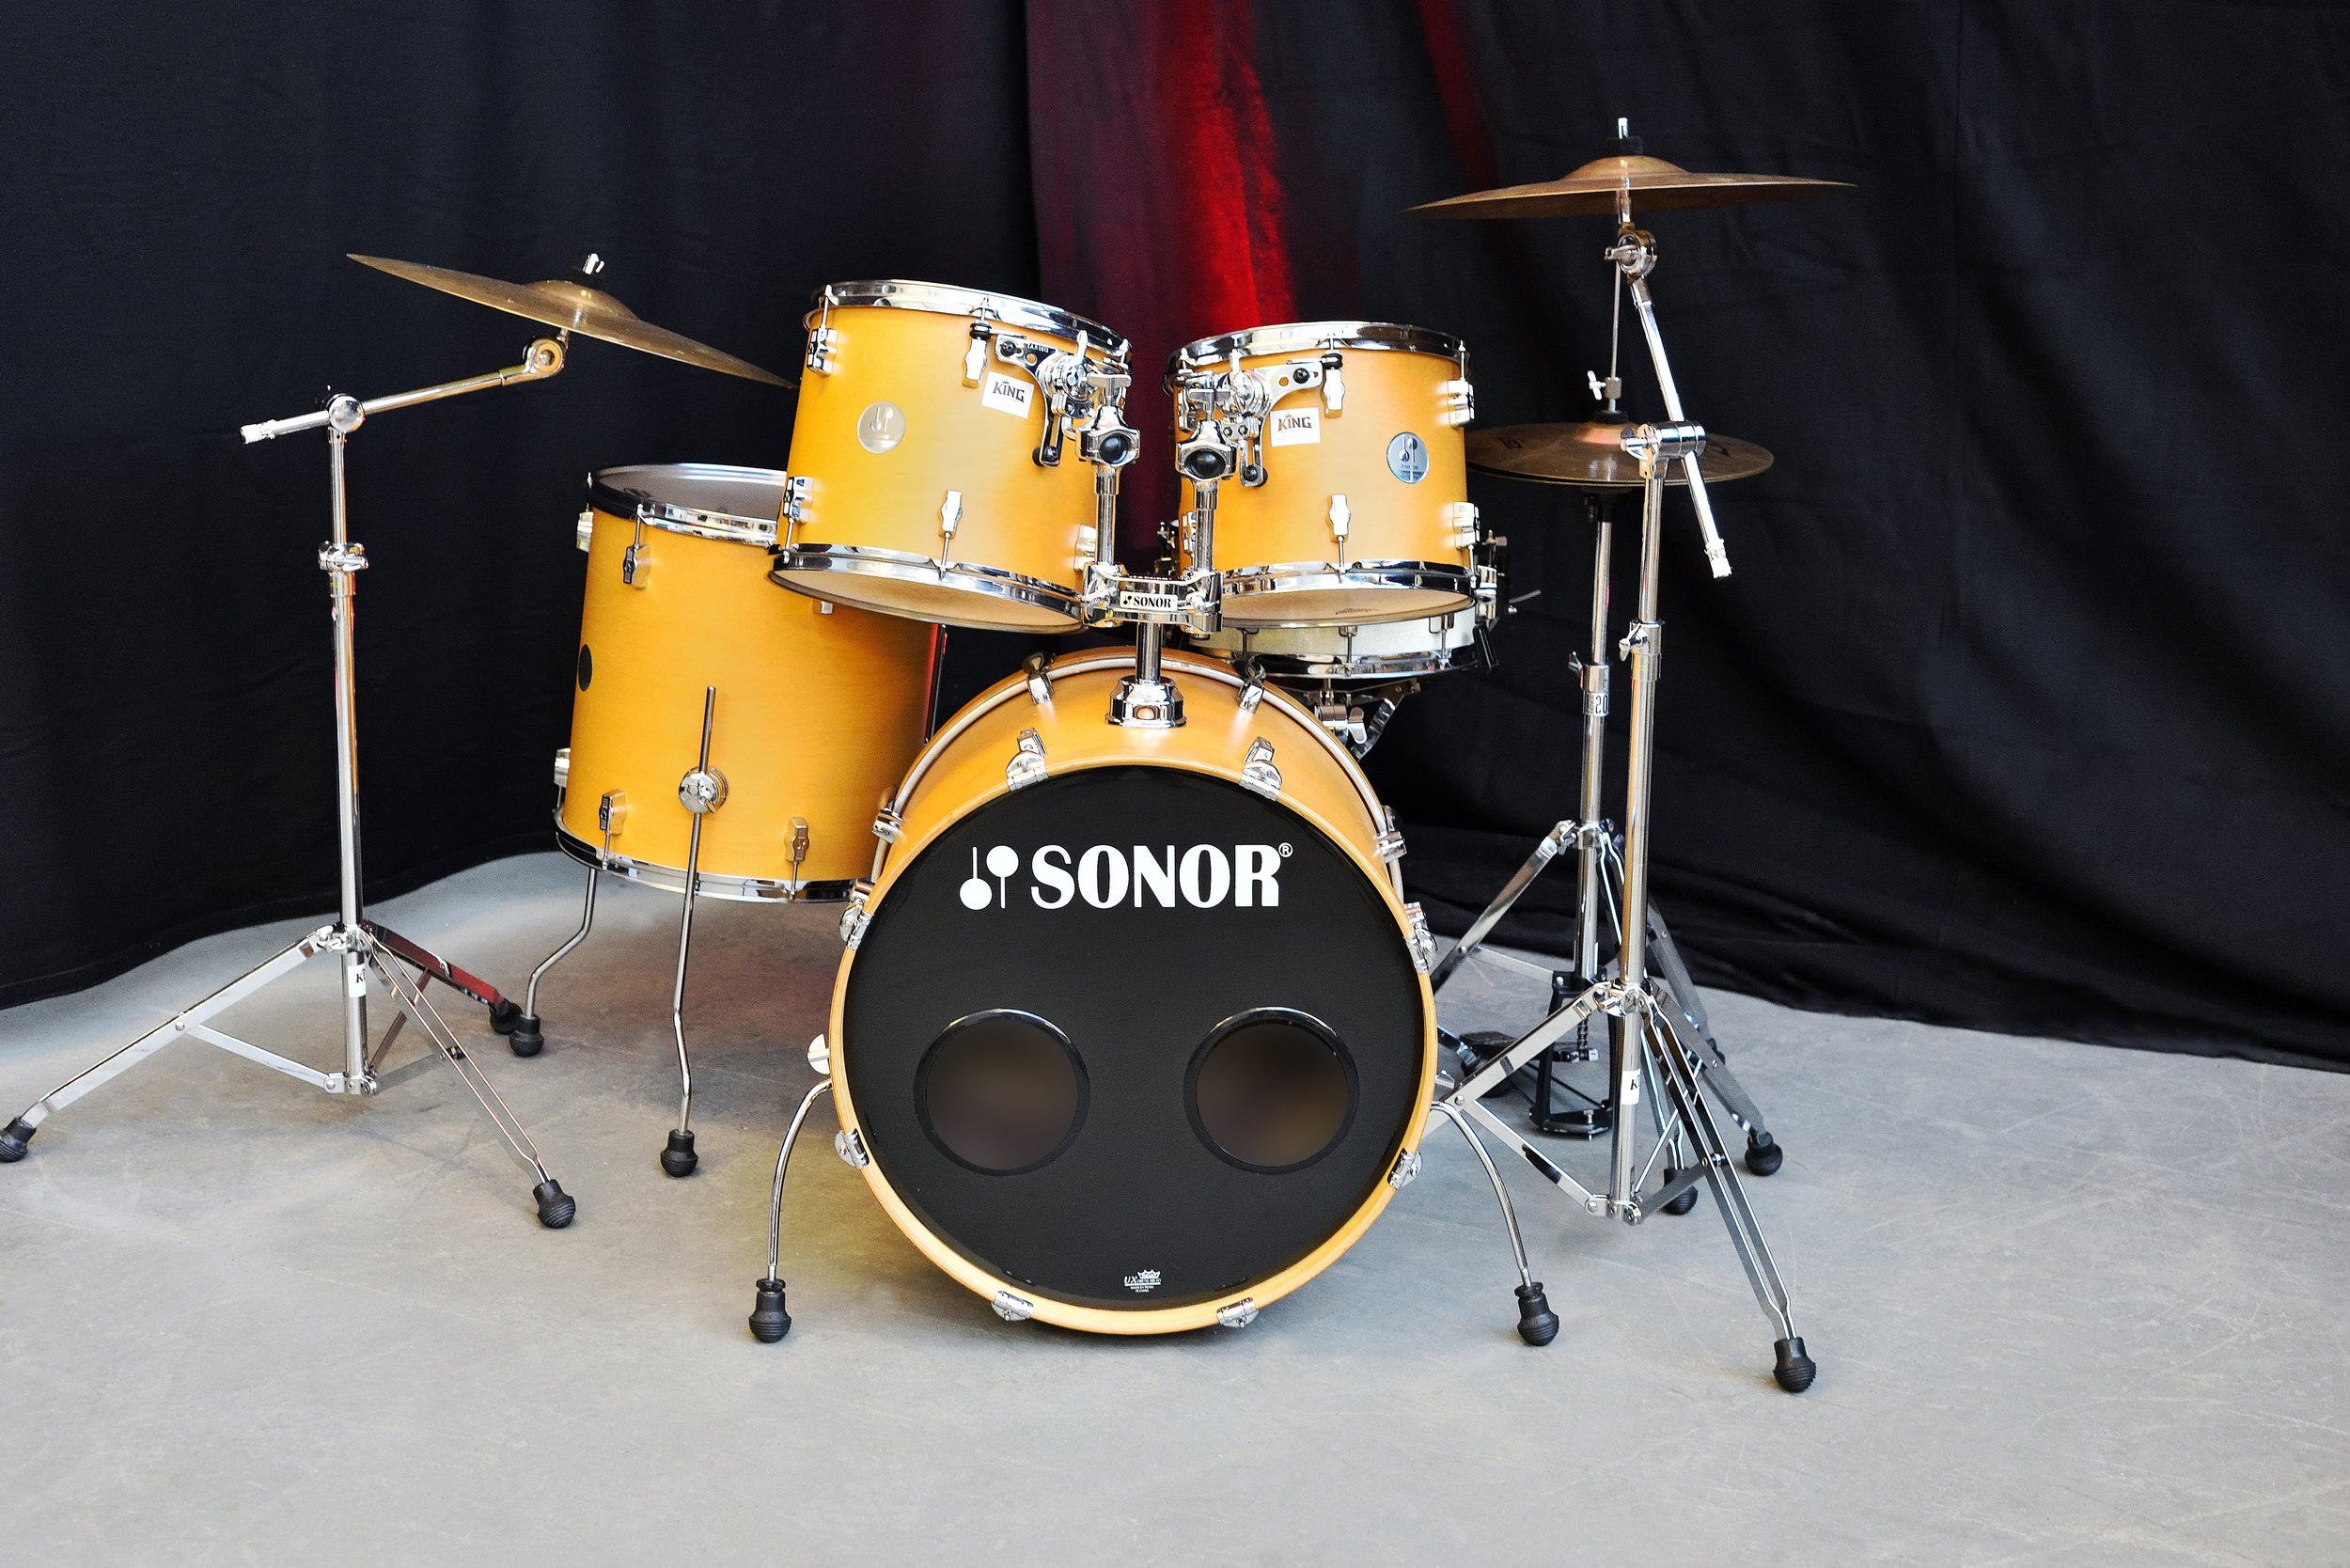 Sonor force 2005 -